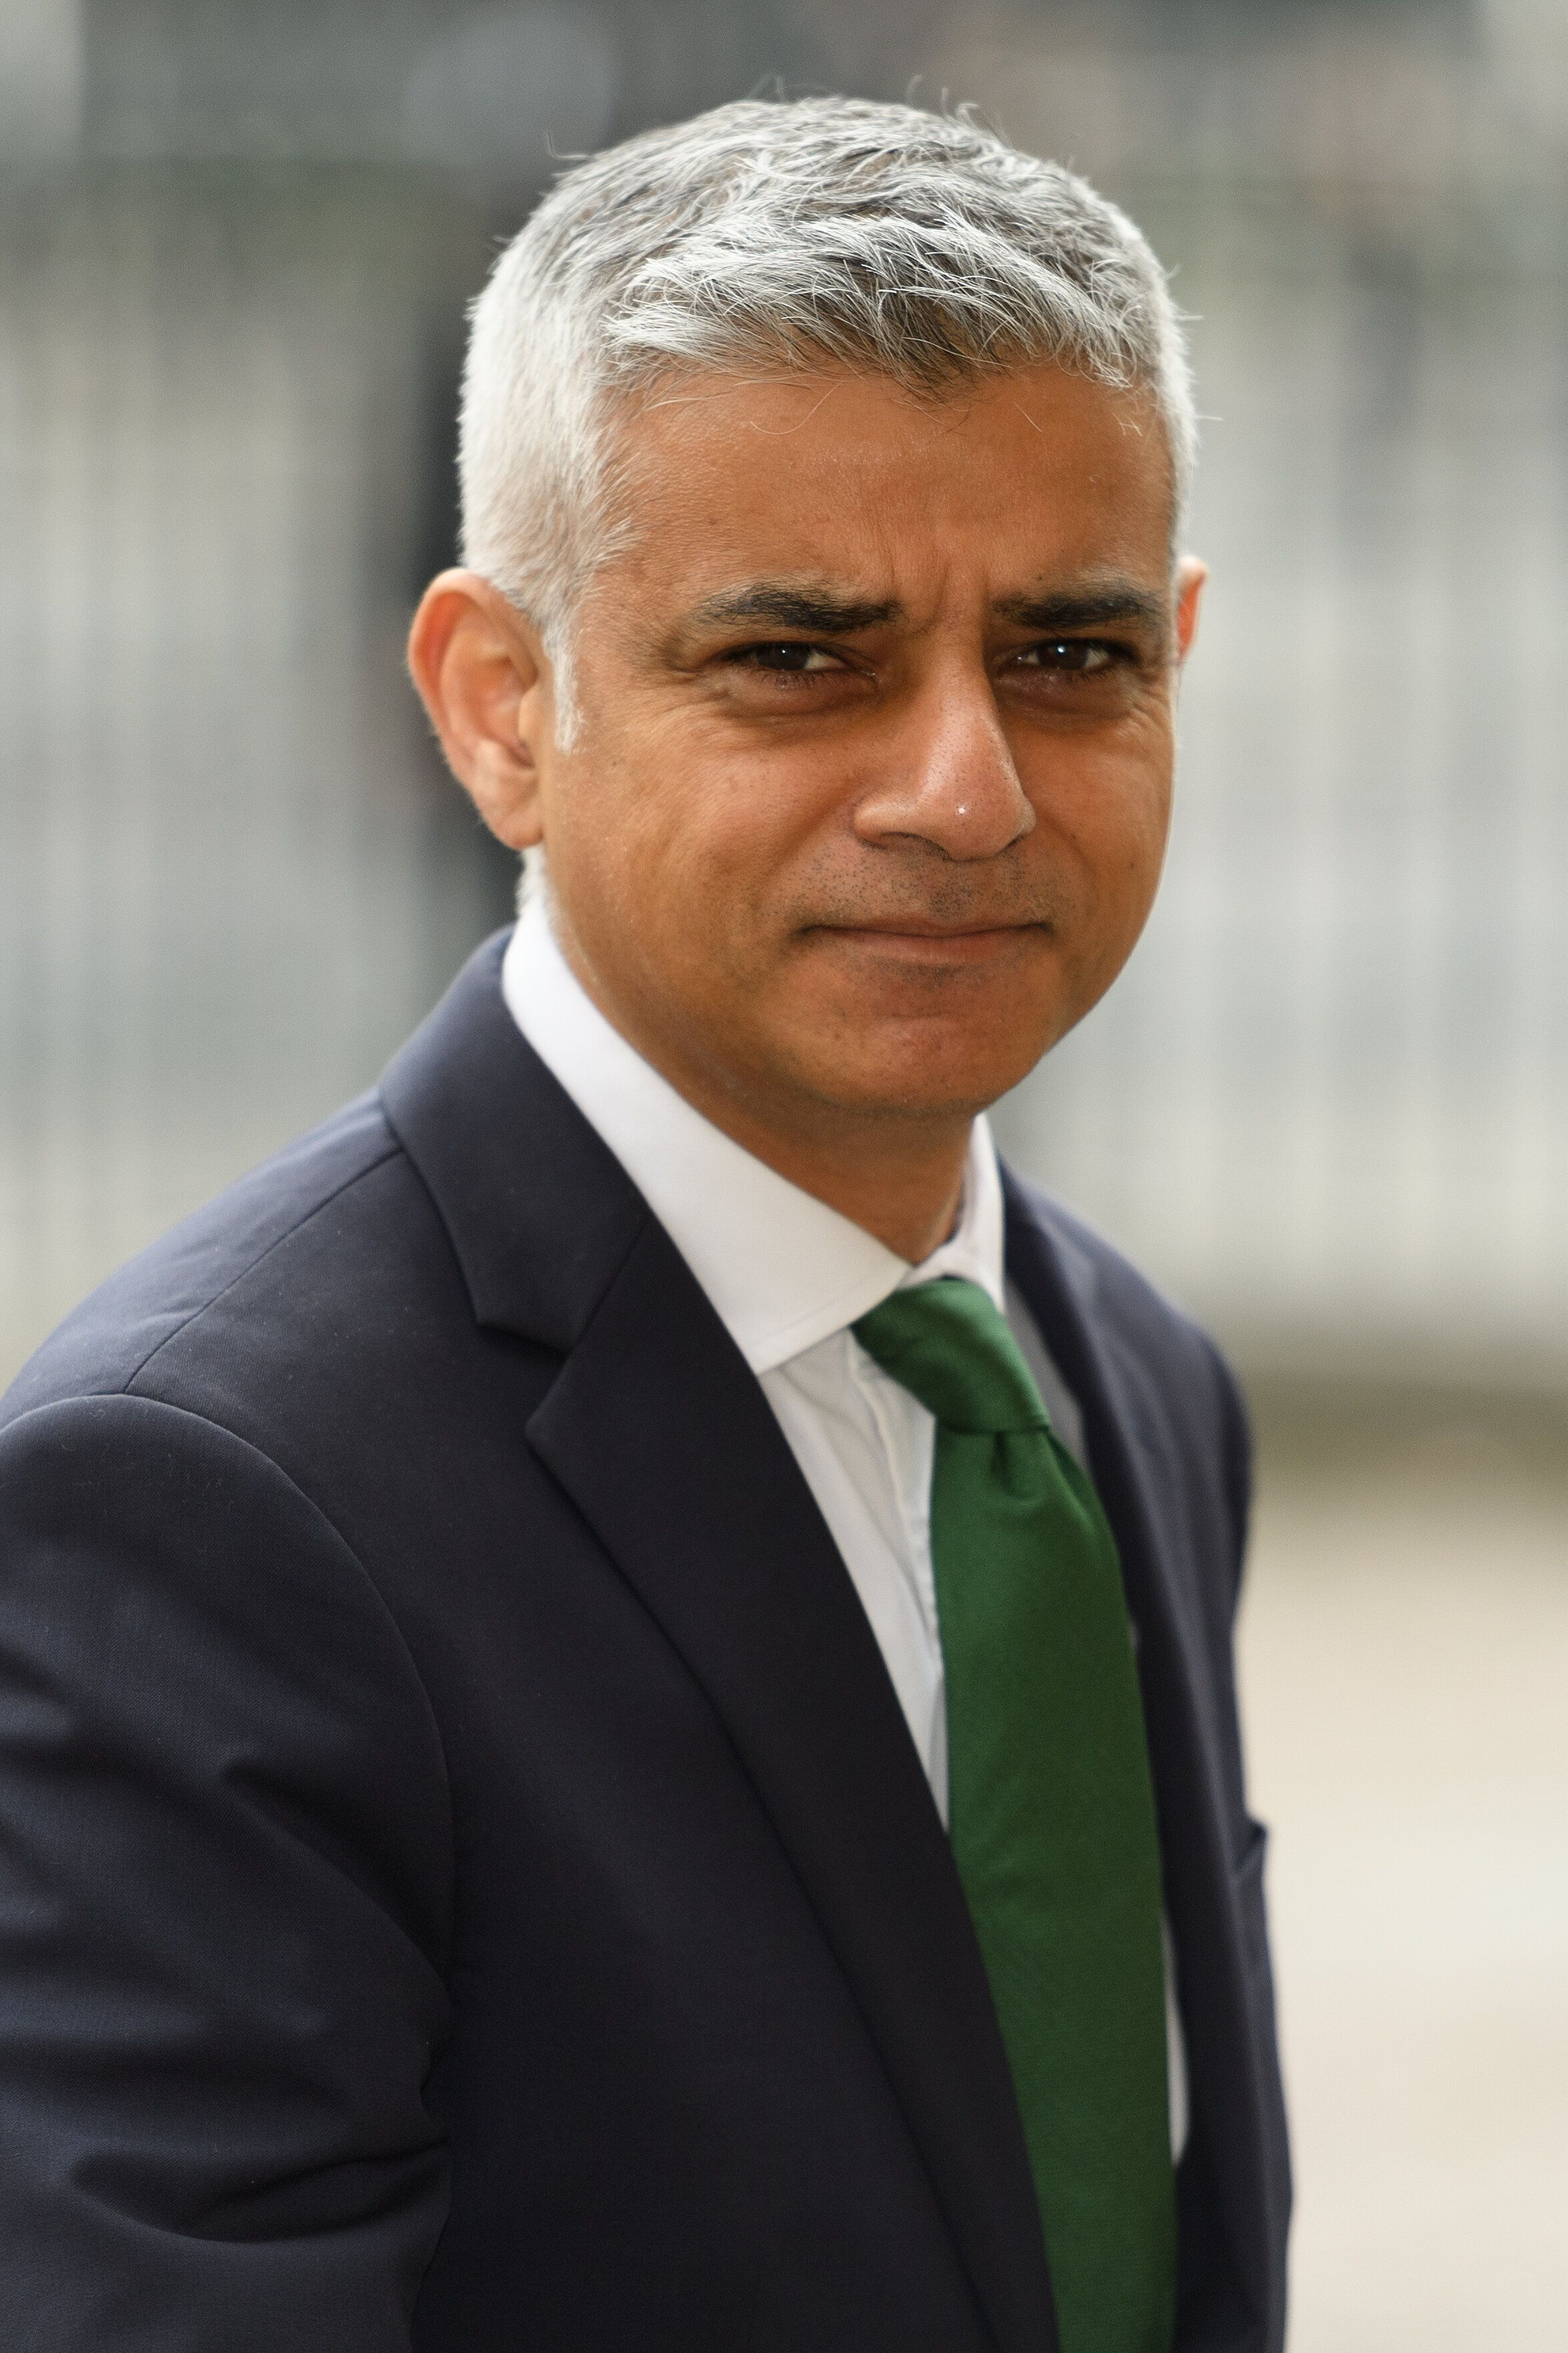 LONDON, ENGLAND - MAY 17: Mayor of London Sadiq Khan arrives at Westminster Abbey, ahead of a special service to mark 100 years since women joined the force, on May 17, 2019 in London, England. The Met has been celebrating the history of the role of women in the force with commemorative events, which culminated in the service at Westminster Abbey that mirrored an event that took place a century ago when a group of female officers appeared in uniform for the first time.  (Photo by Leon Neal/Getty Images)